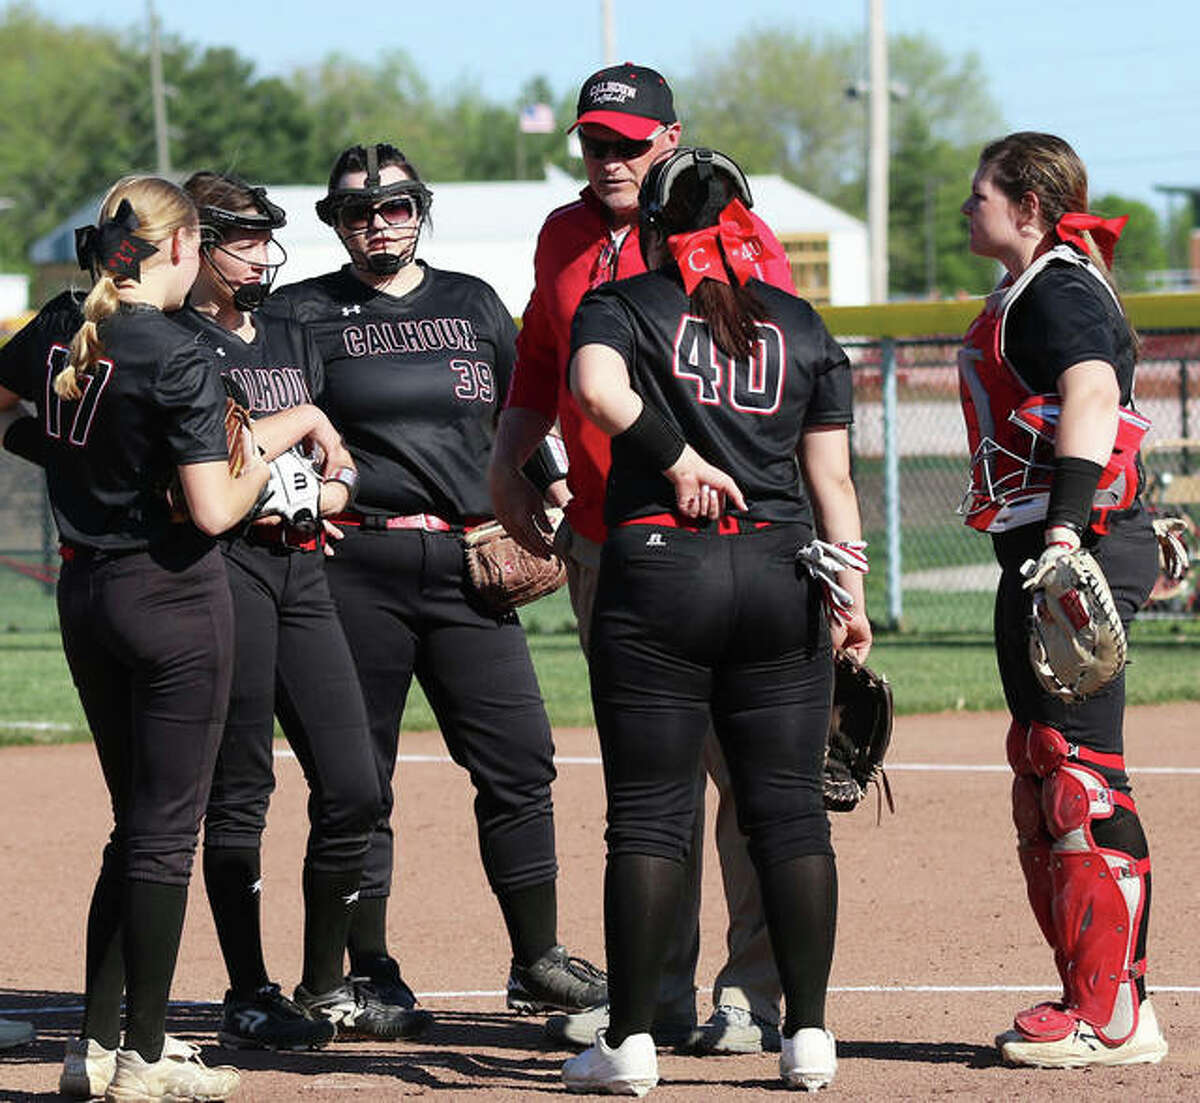 Calhoun coach Duane Sievers meets with some Warriors in a meeting at the pitcher's circle in a game earlier this season. The Warriors finished the season 14-9 with Tuesday's sectional defeat in Centralia.